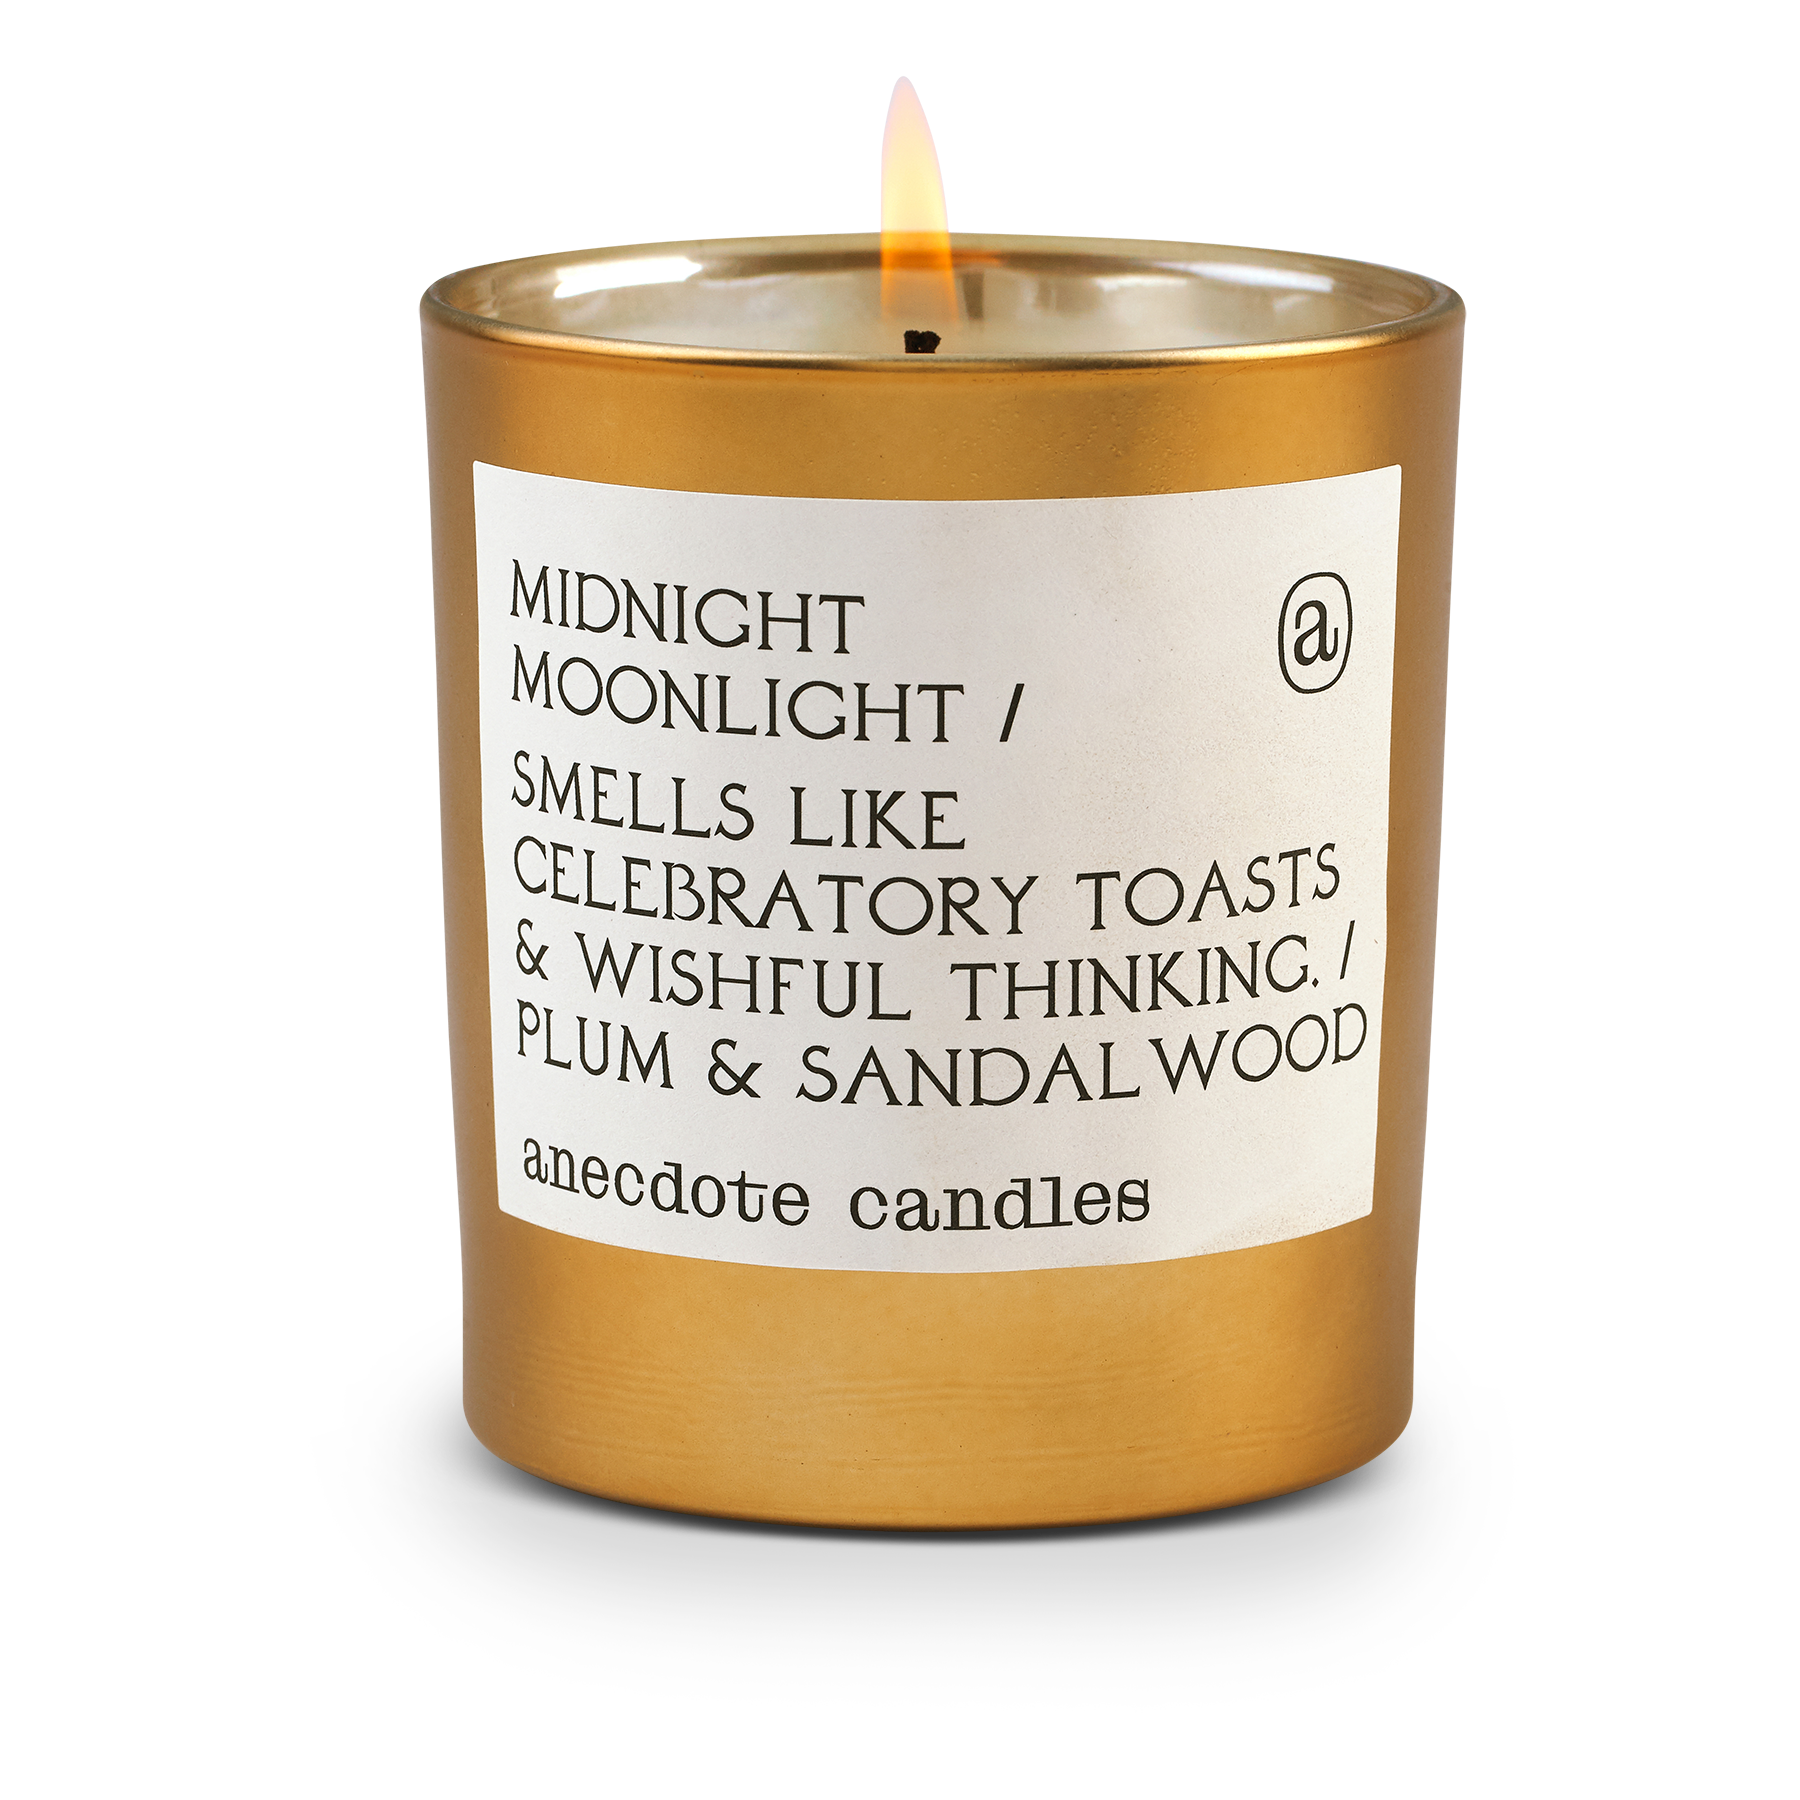 Anecdote Candles Midnight Moonlight